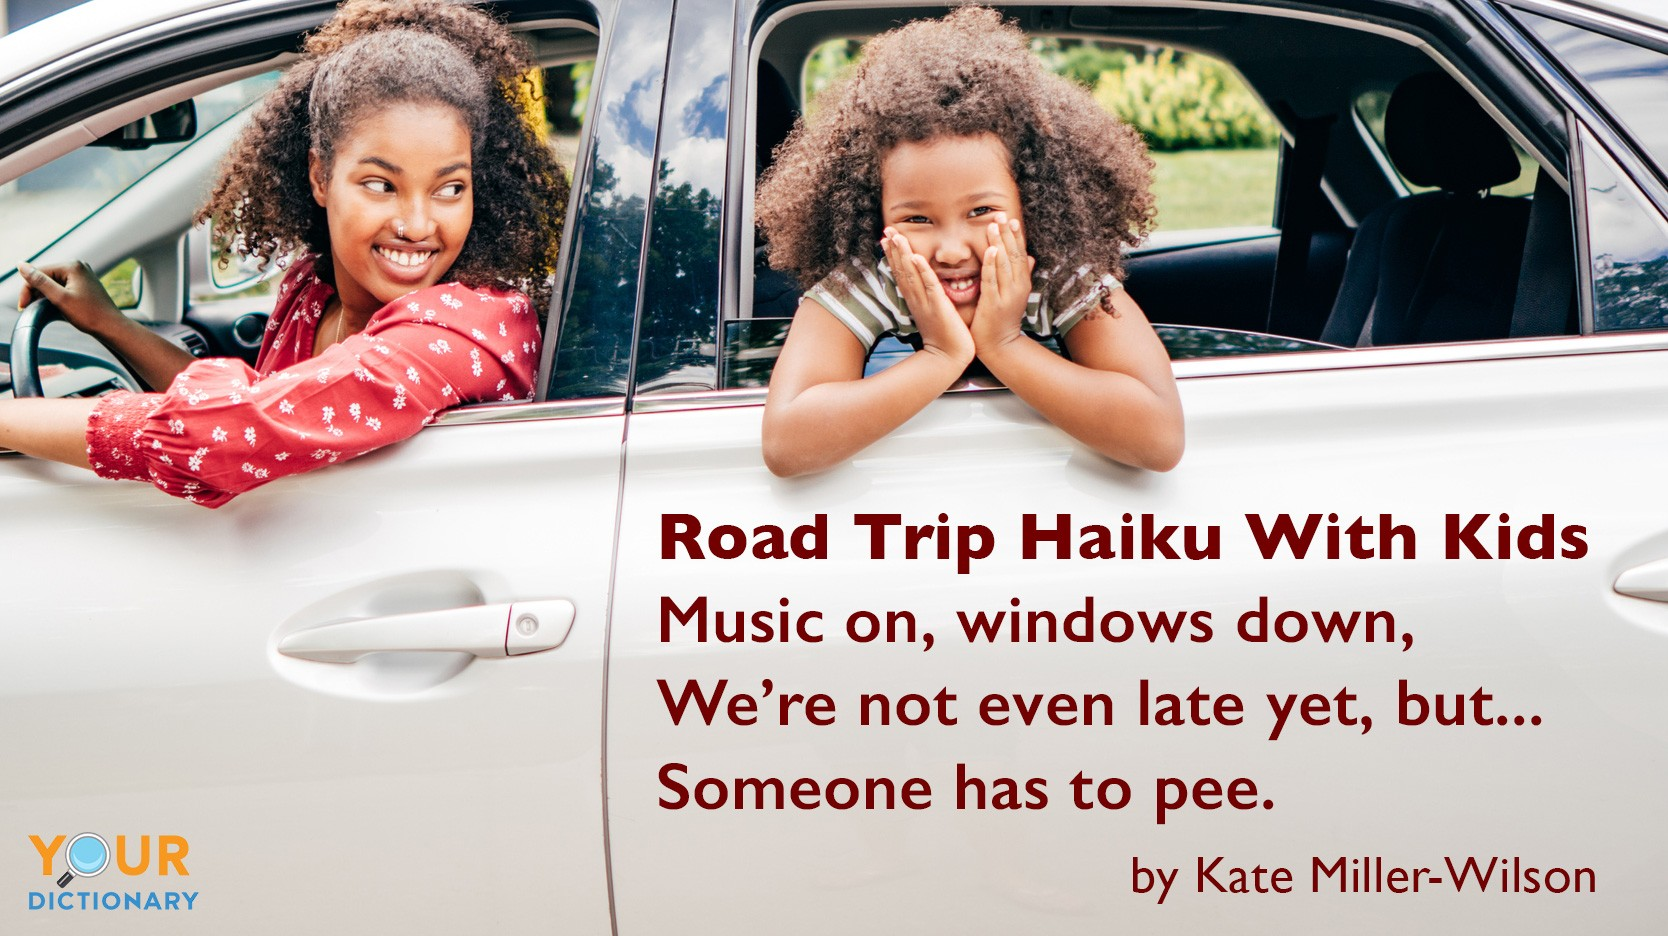 funny haiku poem for road trip with kids